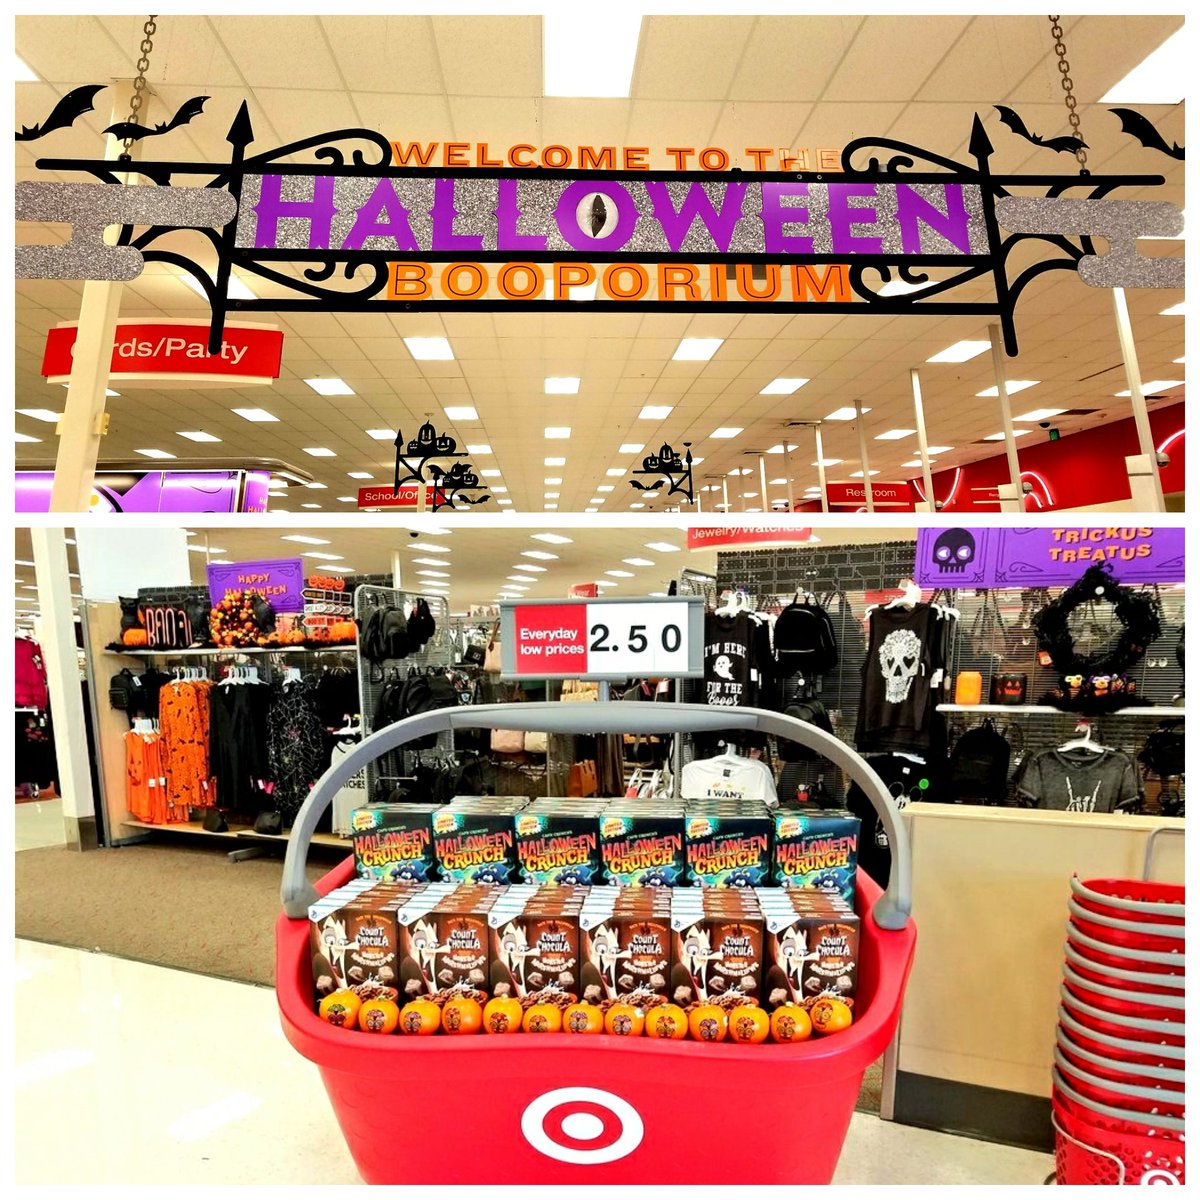 Getting Boo-tastic here at the League City Target  #SeasonallyRelevant #BigBaskets #Halloween #T2320ModelStore #D303 #G392 <br>http://pic.twitter.com/tj6HecVK88